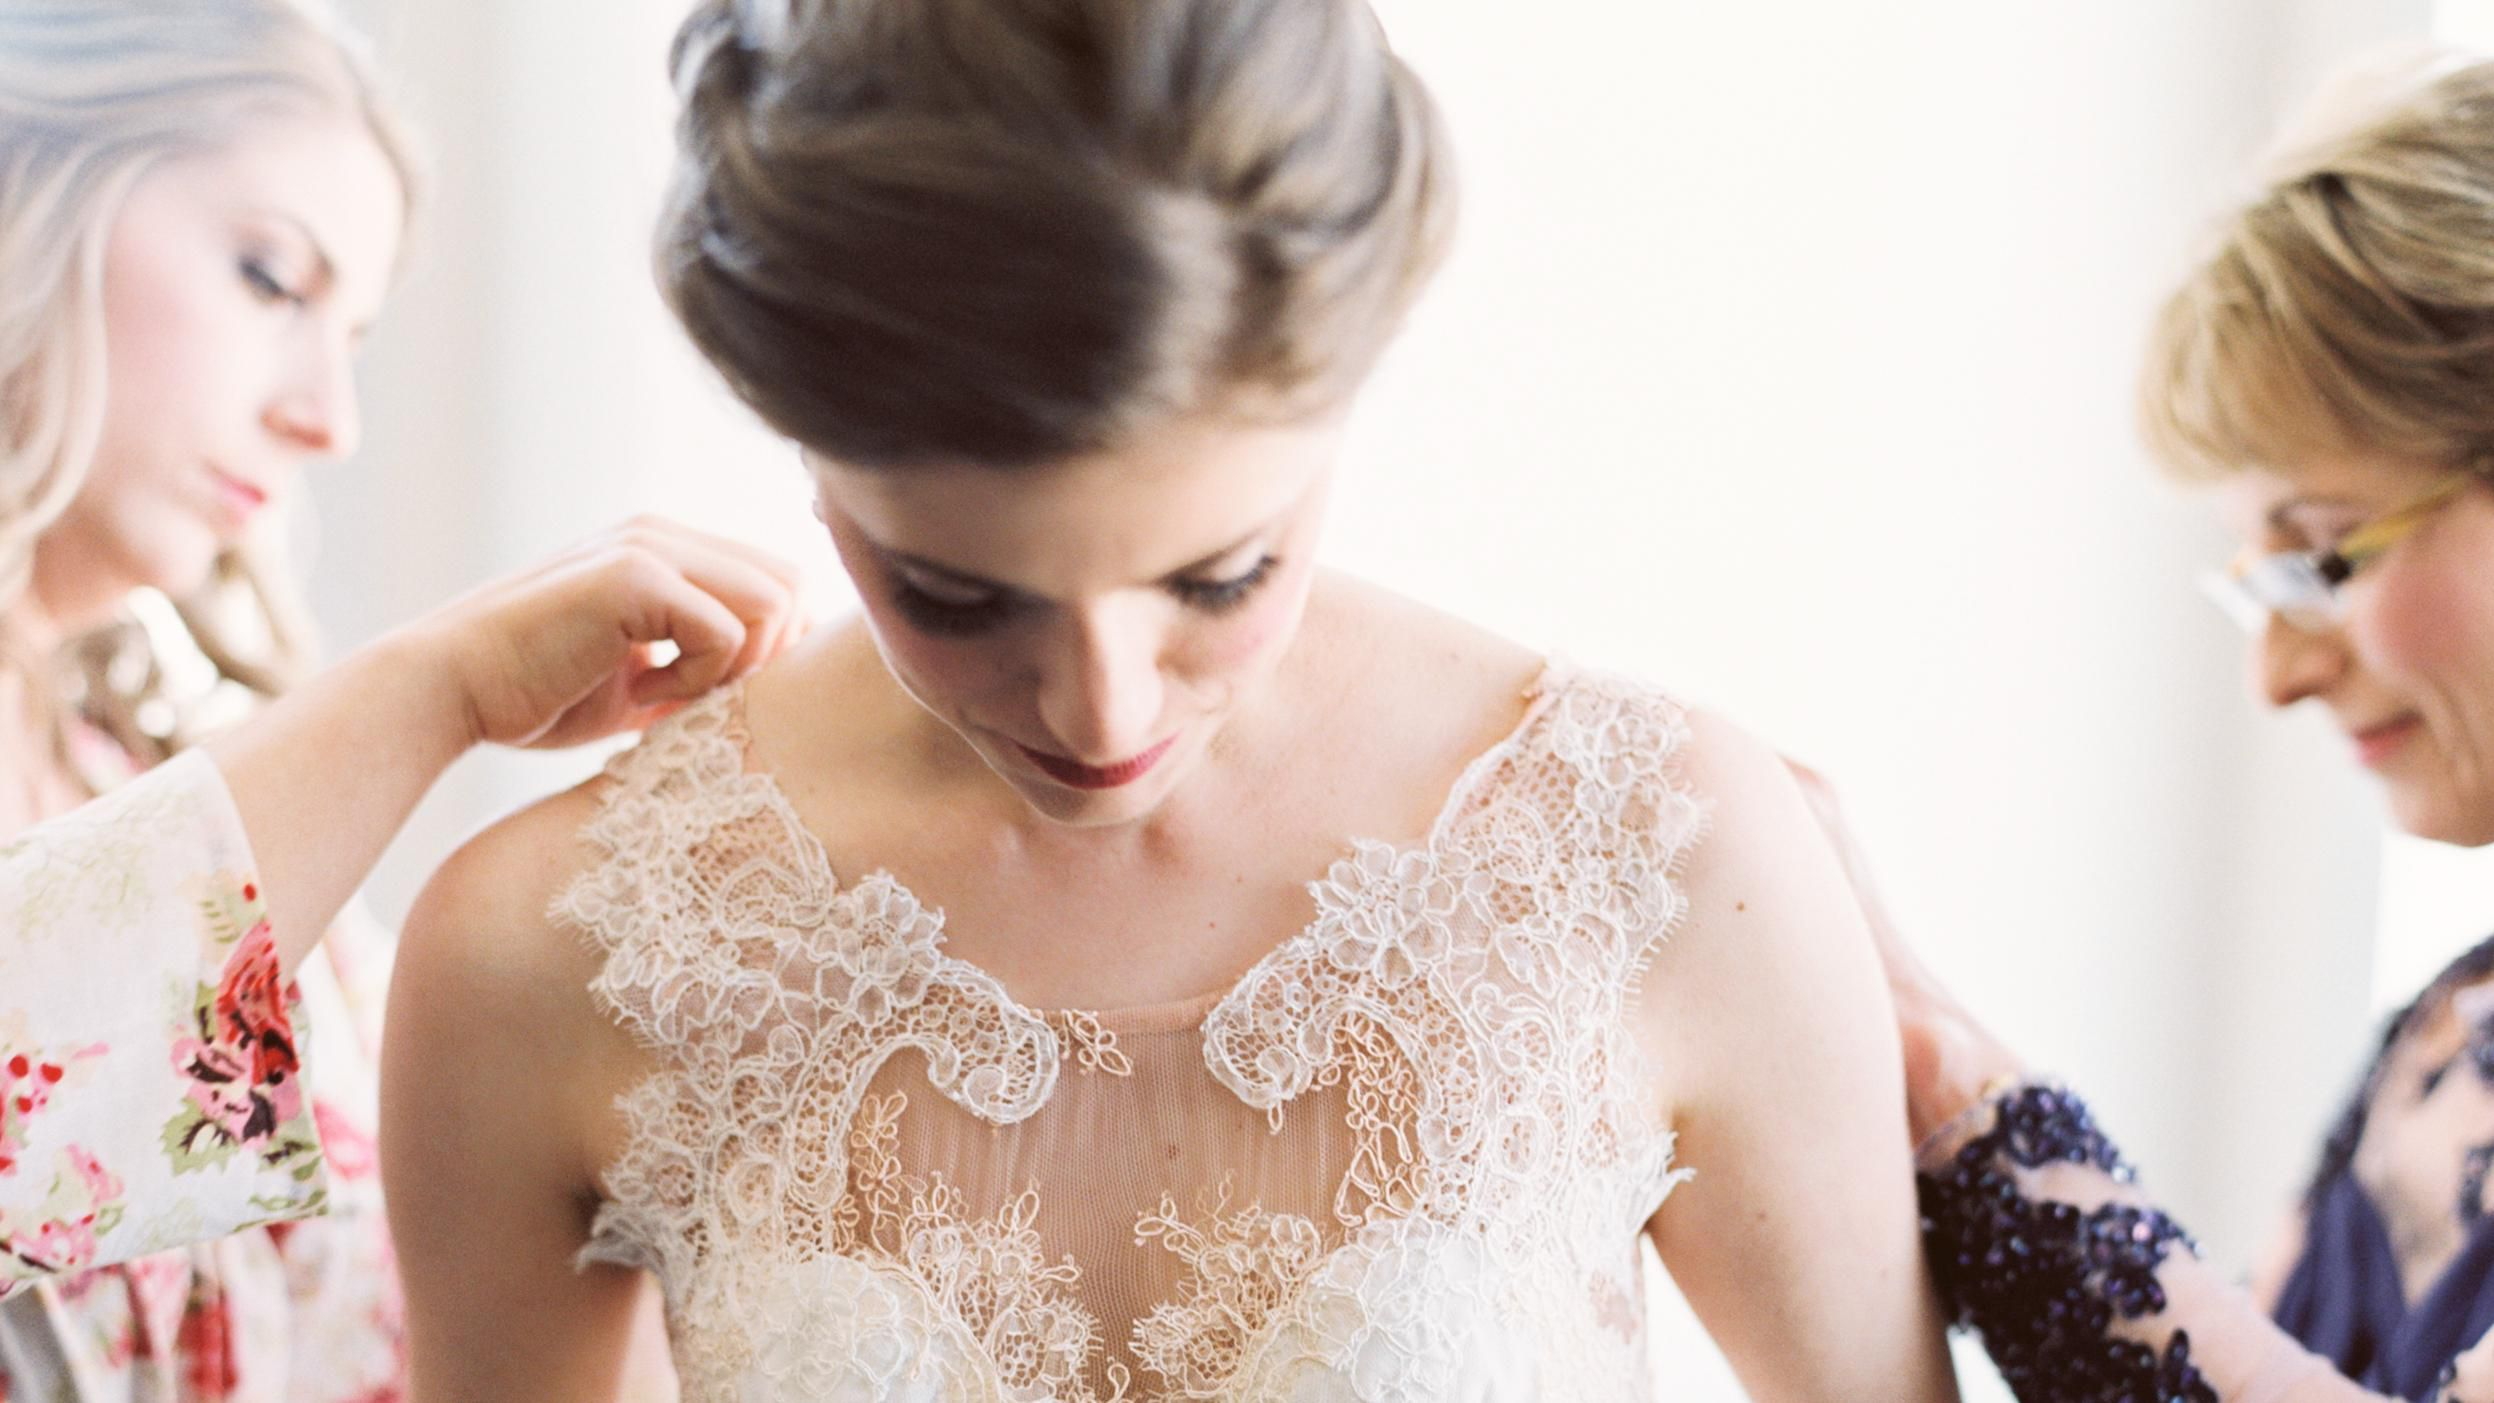 The Best Ways To Accentuate Small Breasts In A Wedding Dress